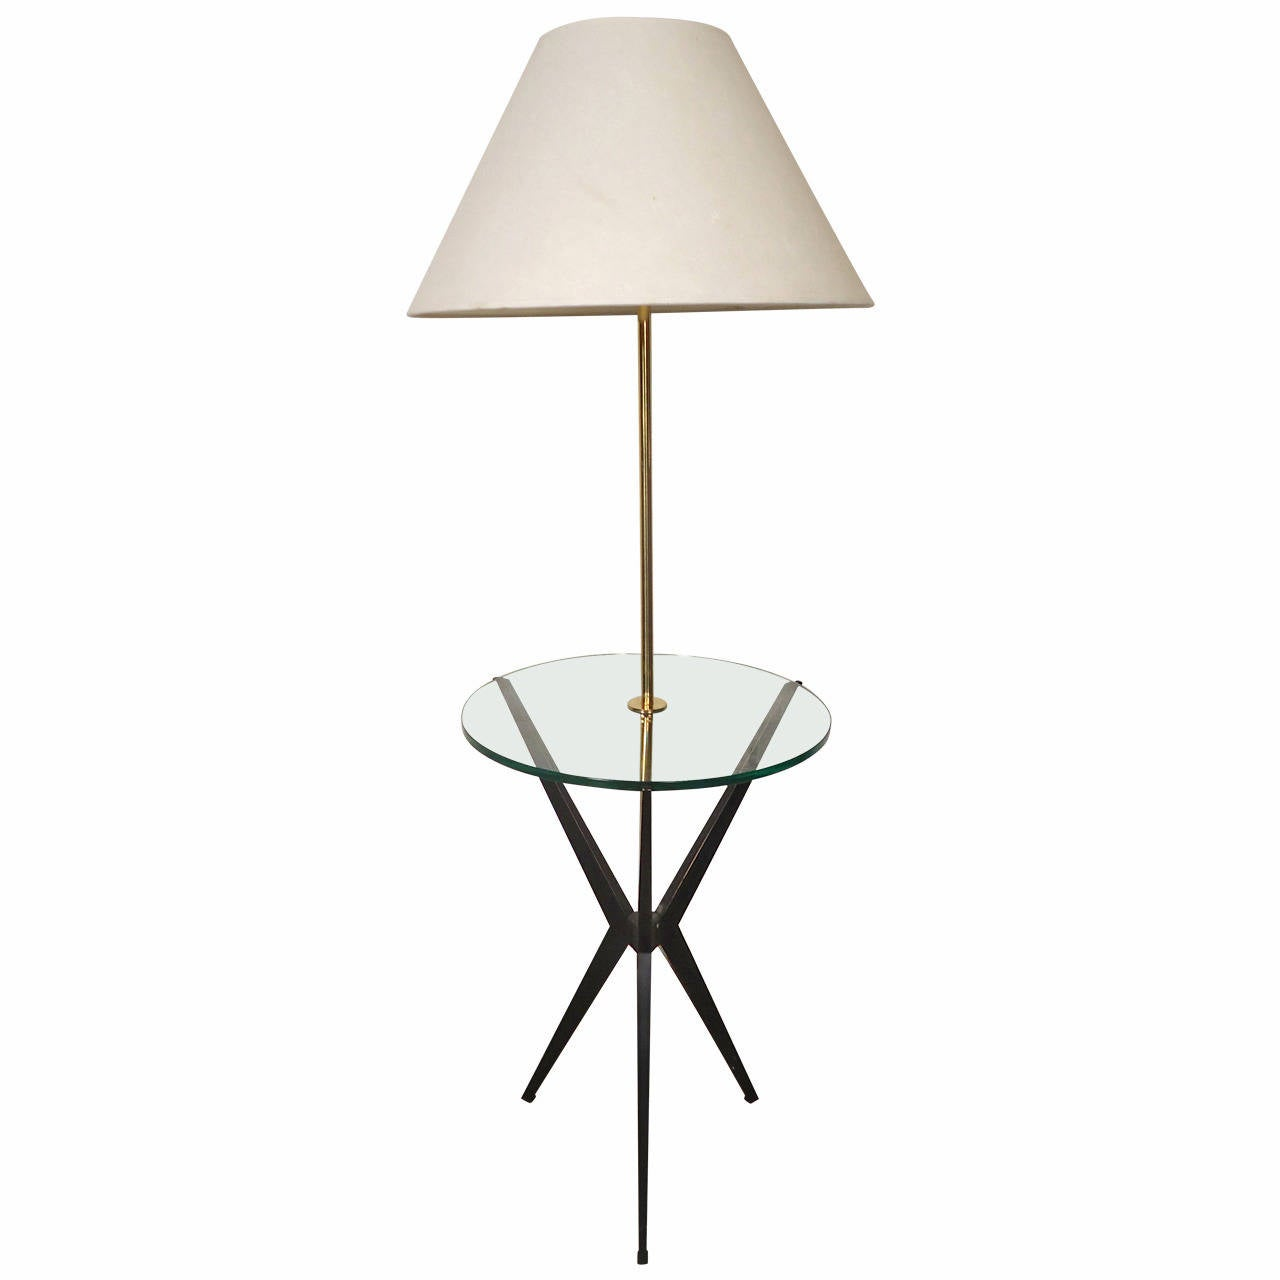 Tray table floor lamp by robert abbey at 1stdibs for Floor lamps with tray tables